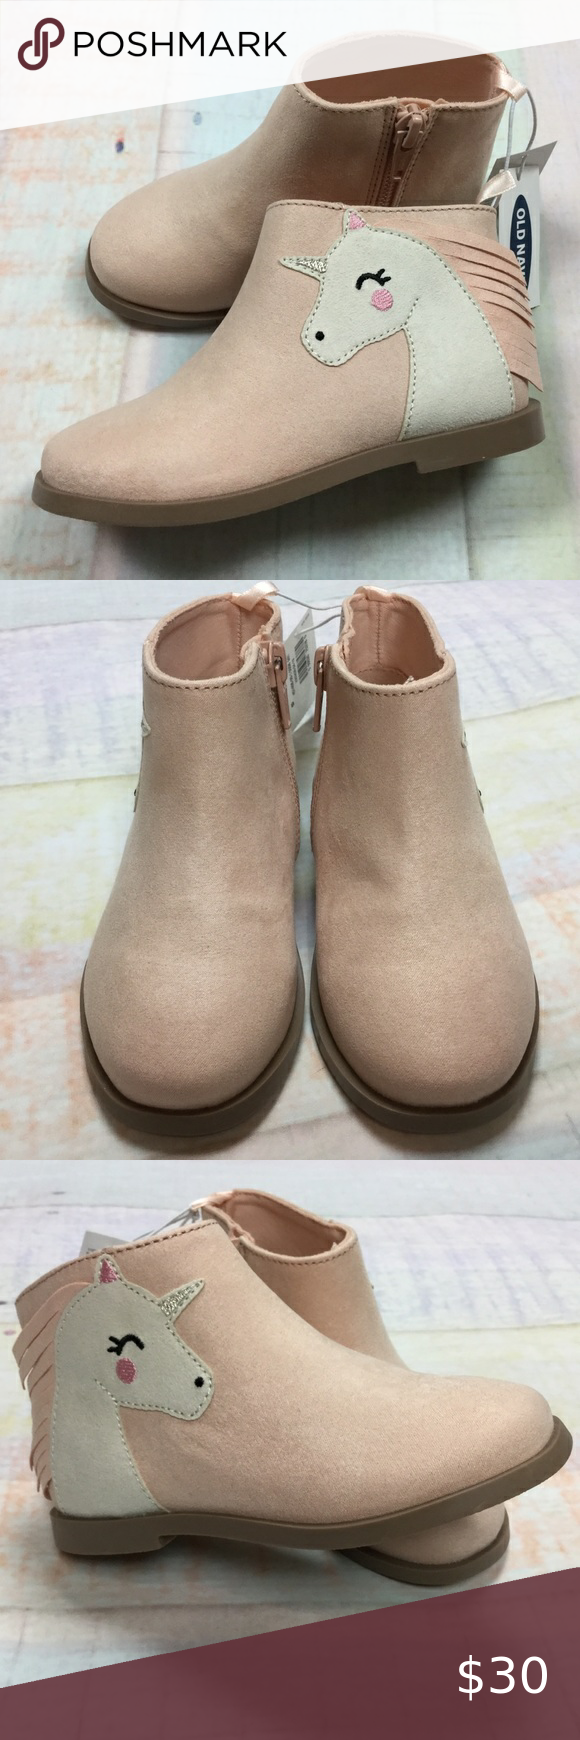 Toddler Pink Unicorn Boots